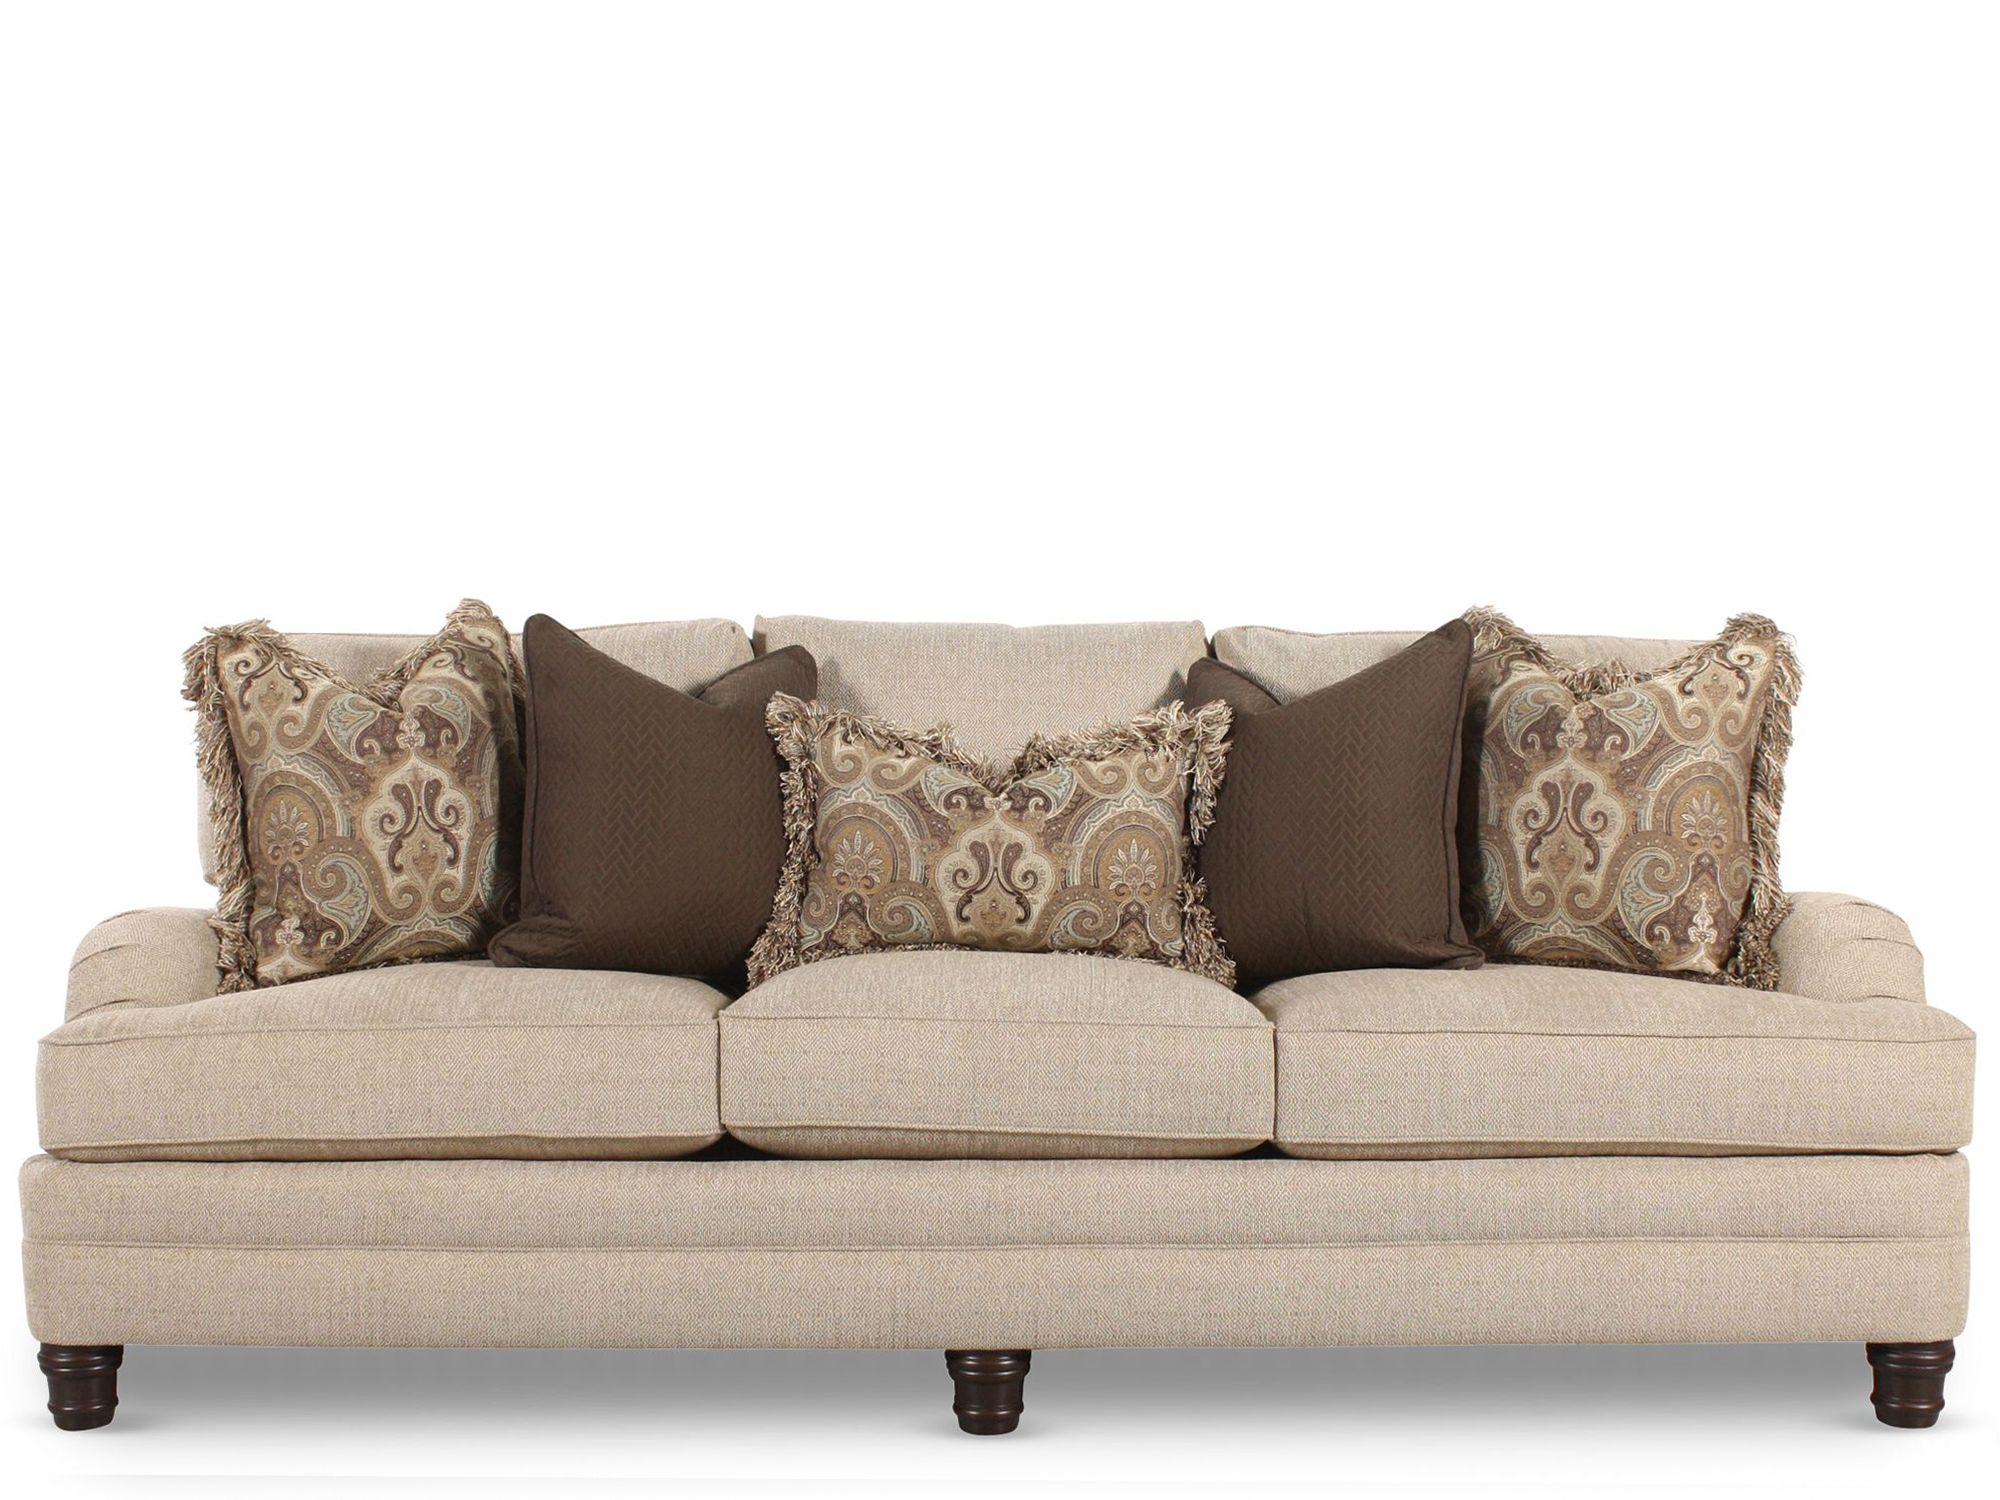 Bernhardt tarleton sofa mathis brothers furniture for Bernhardt furniture